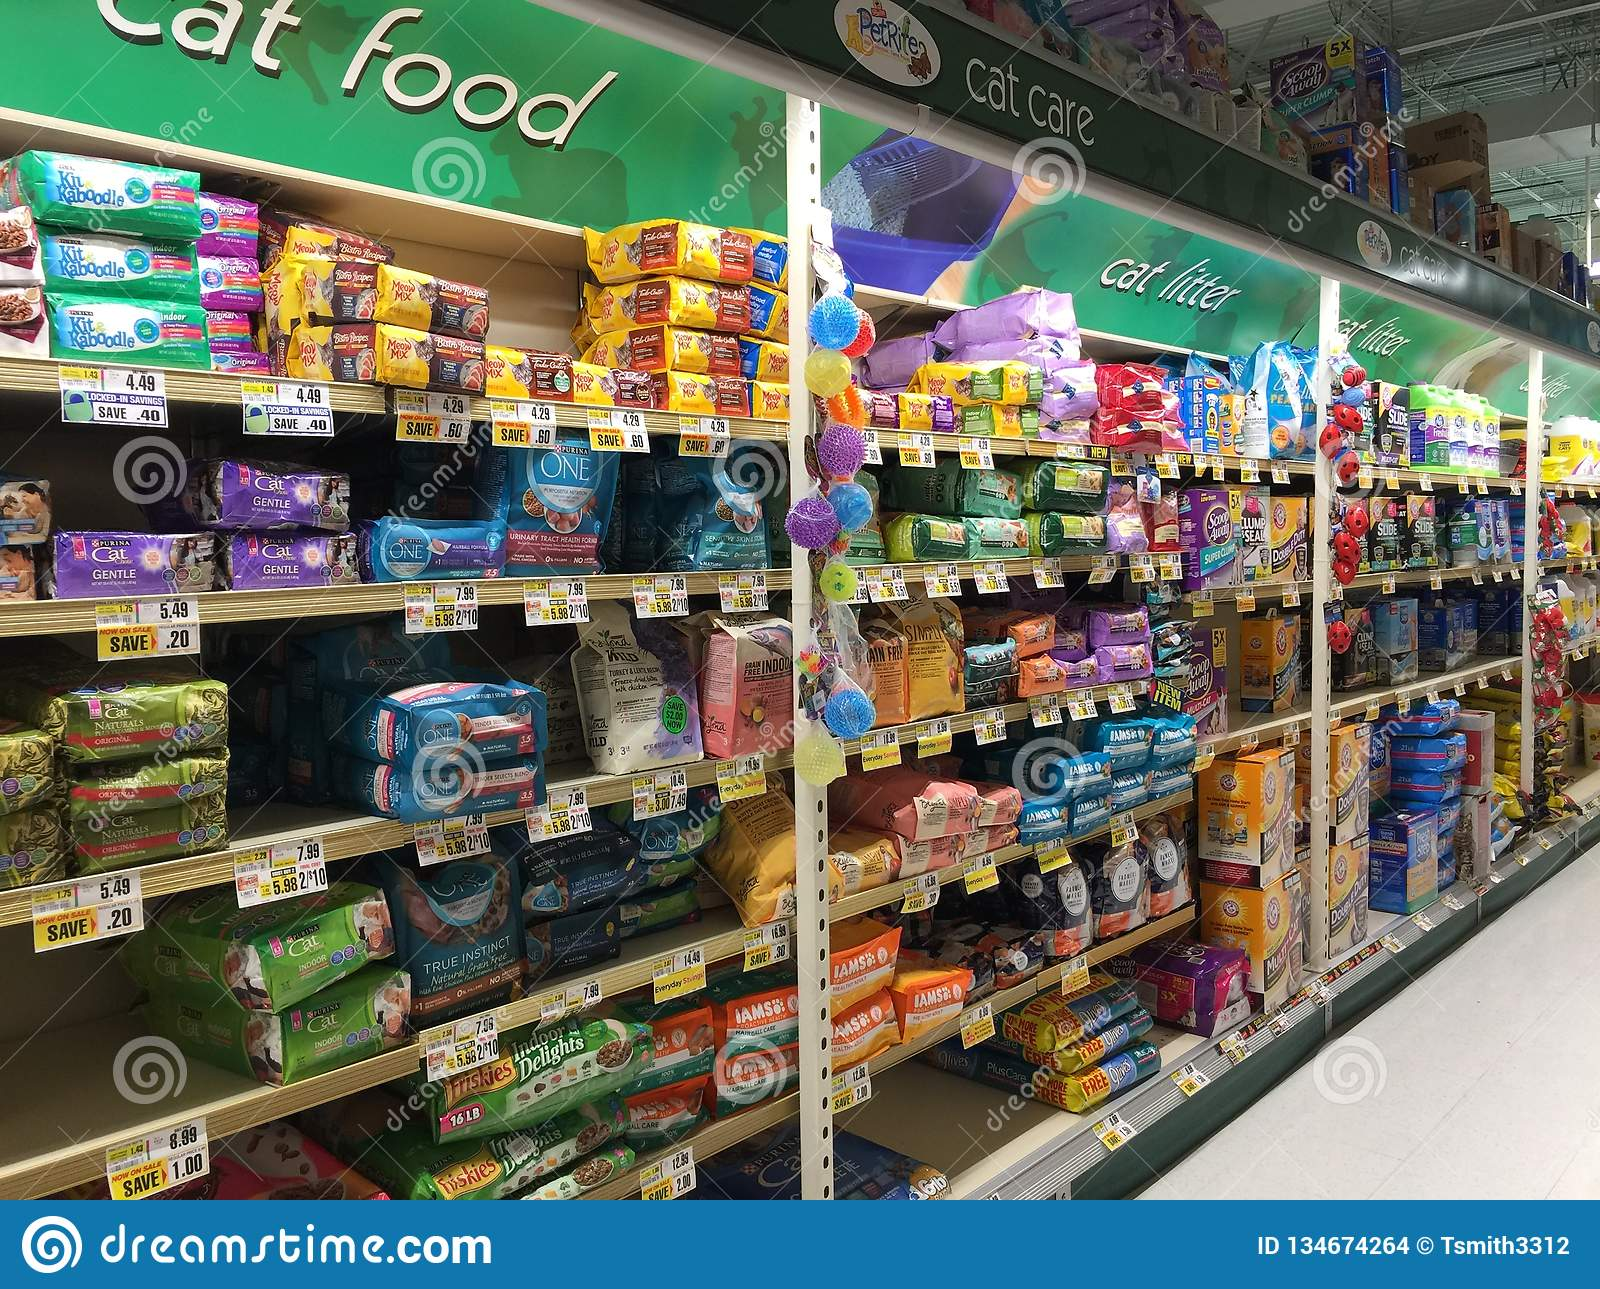 Cat Food Cat Litter Pet Supplies Section Grocery Store